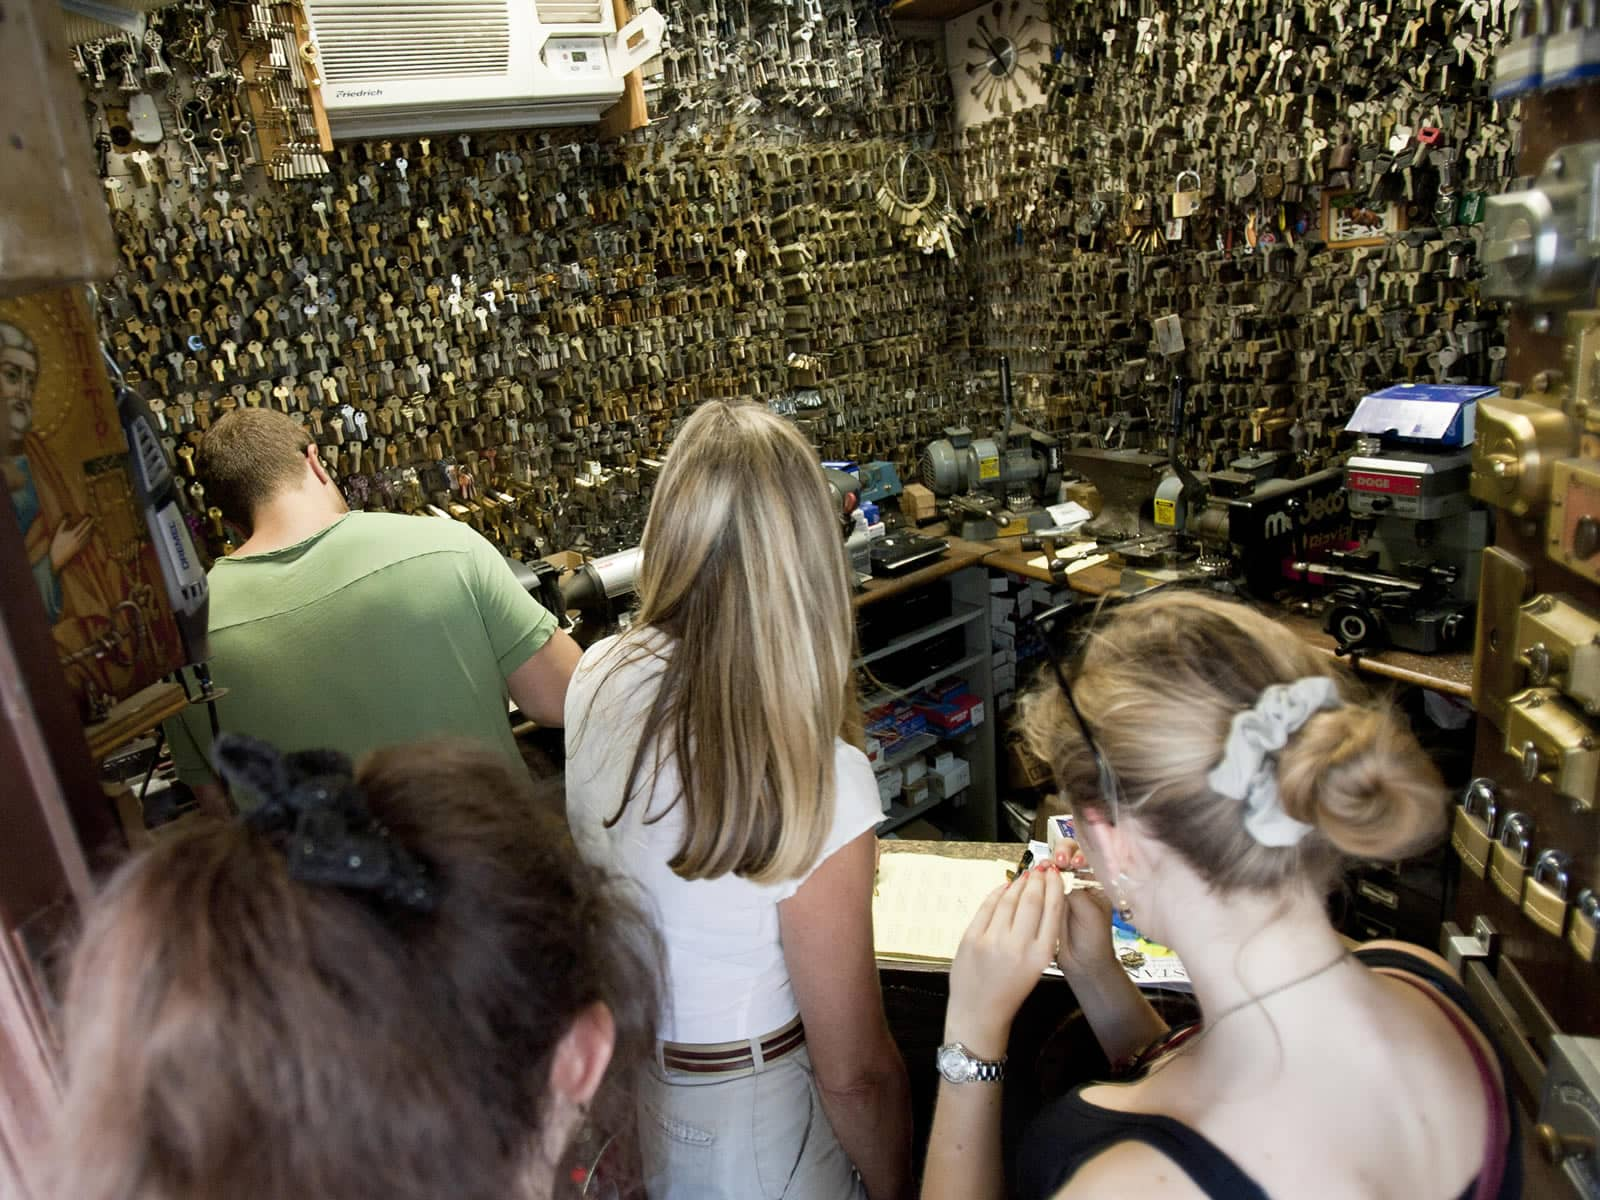 Greenwich Locksmiths provides key cutting services in our West Village locksmith shop in NYC